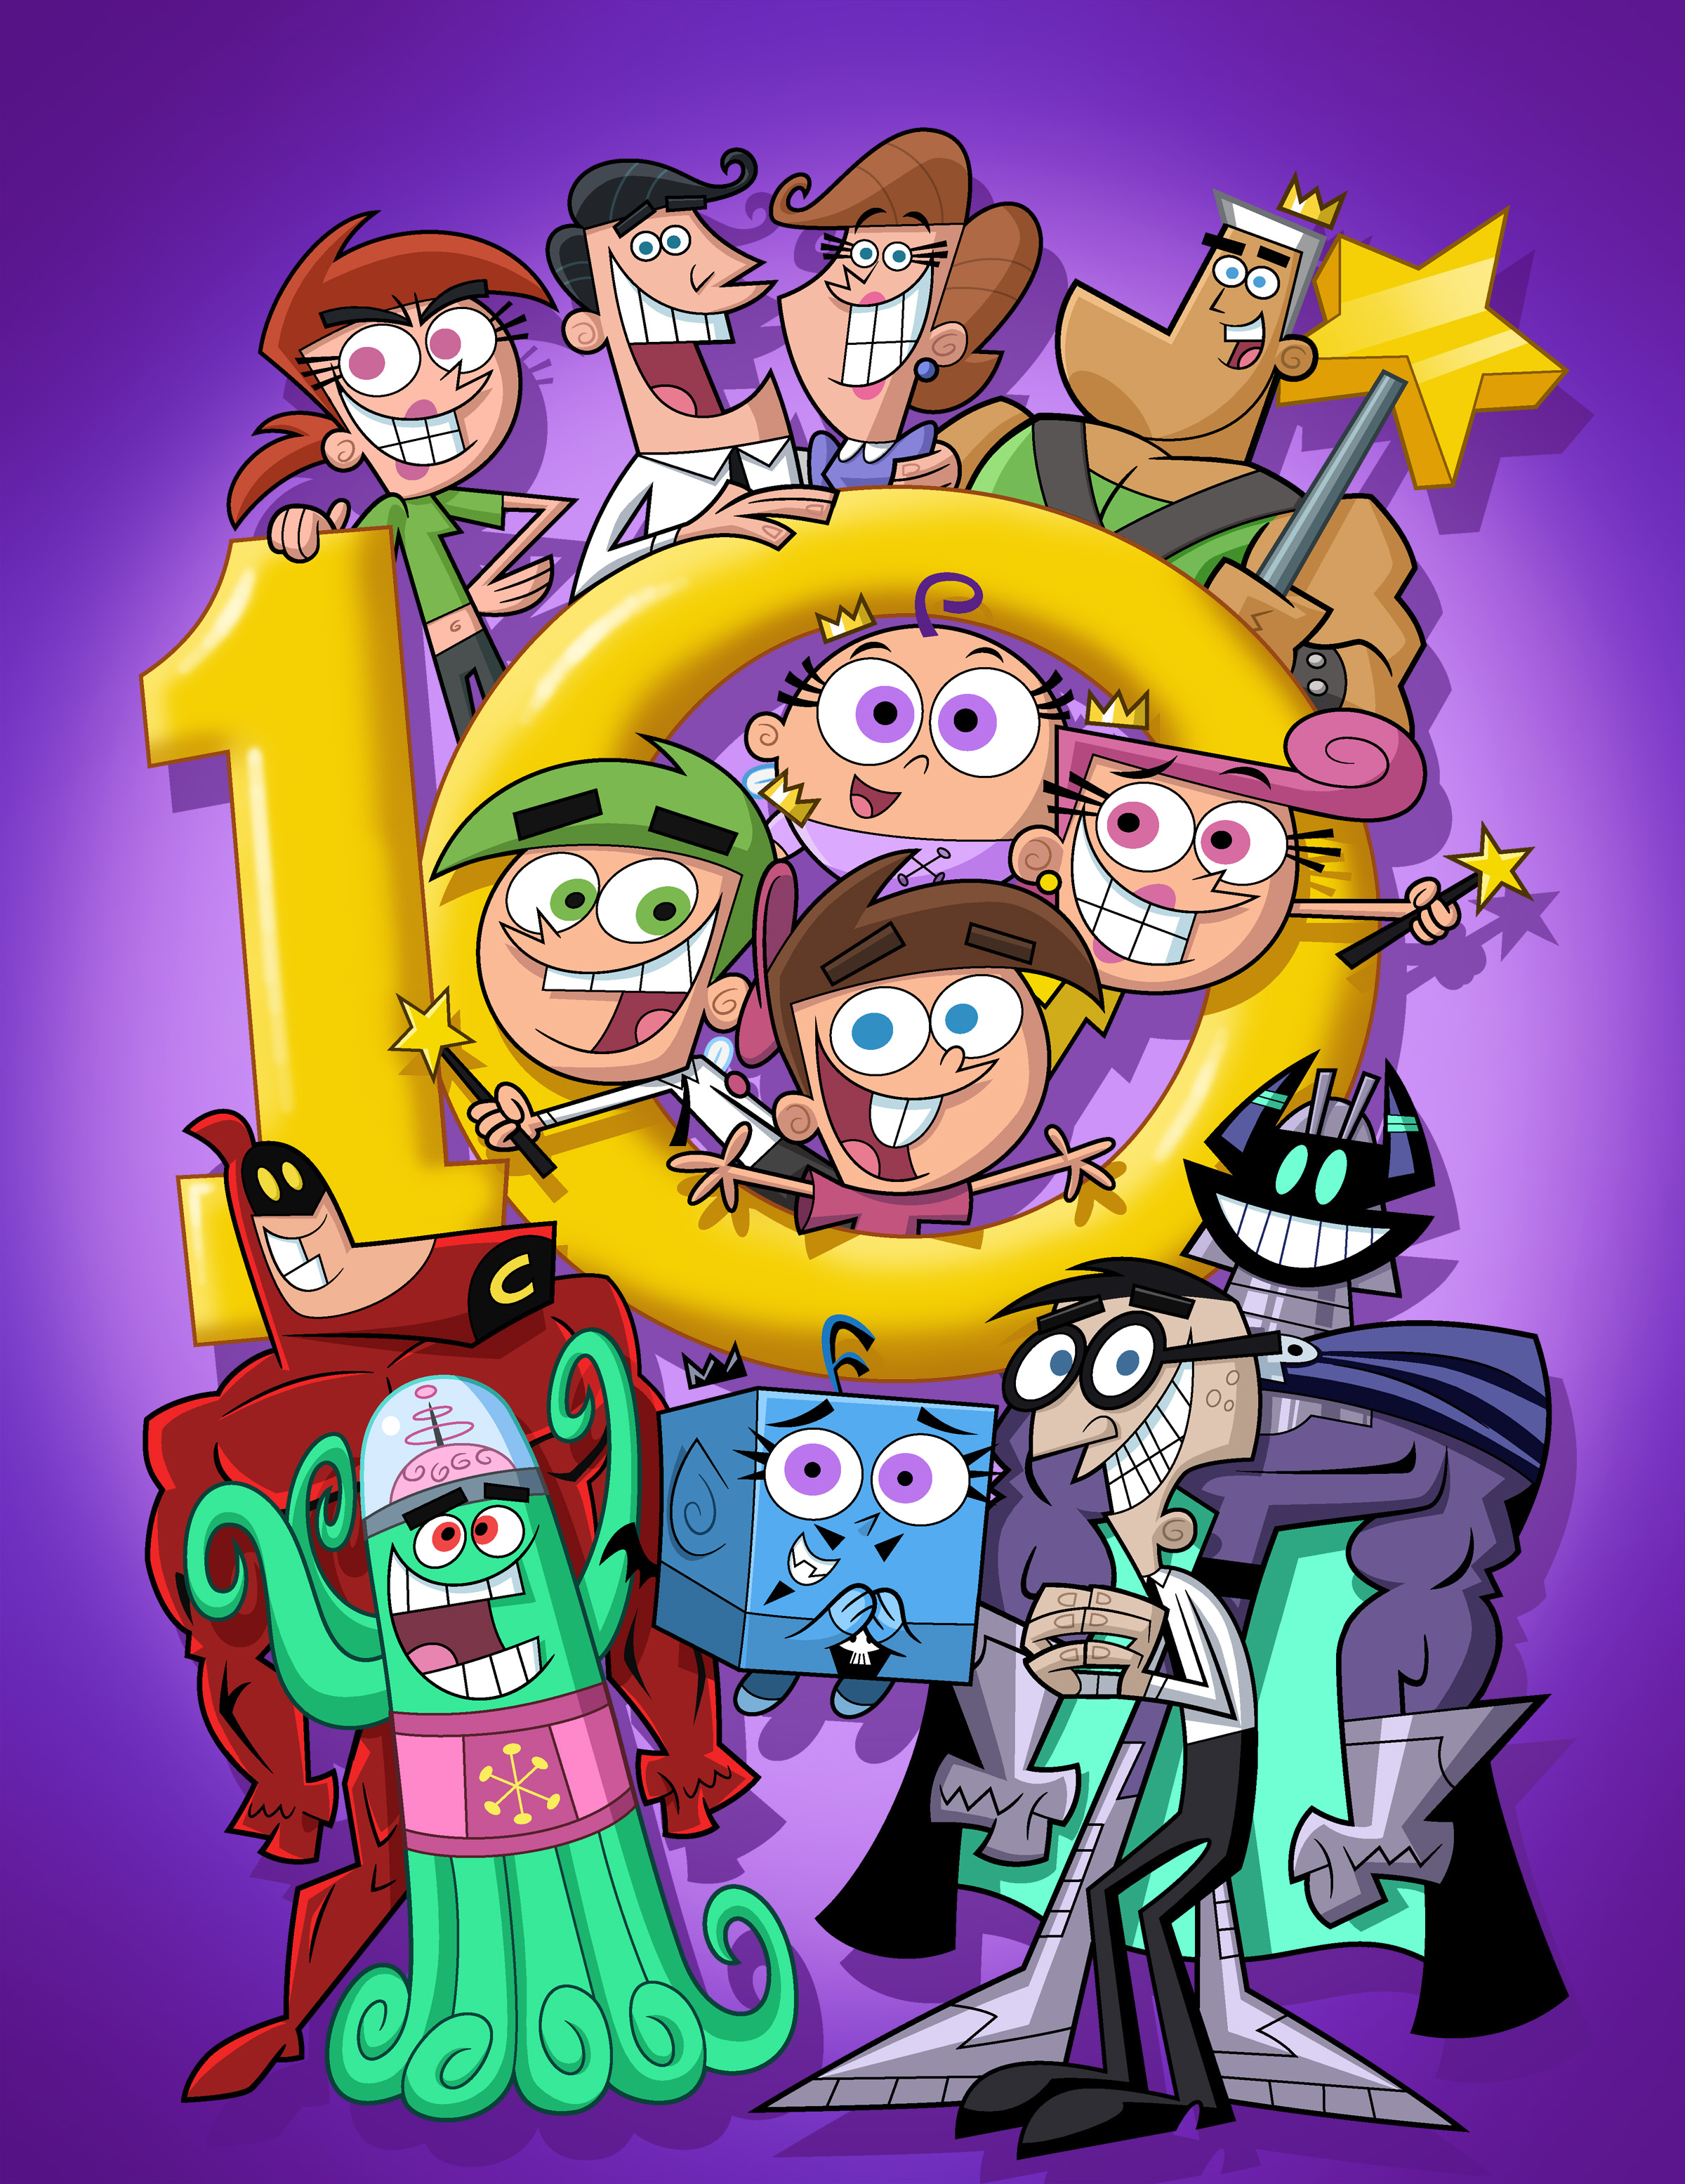 HQ The Fairly OddParents Wallpapers   File 1715.07Kb